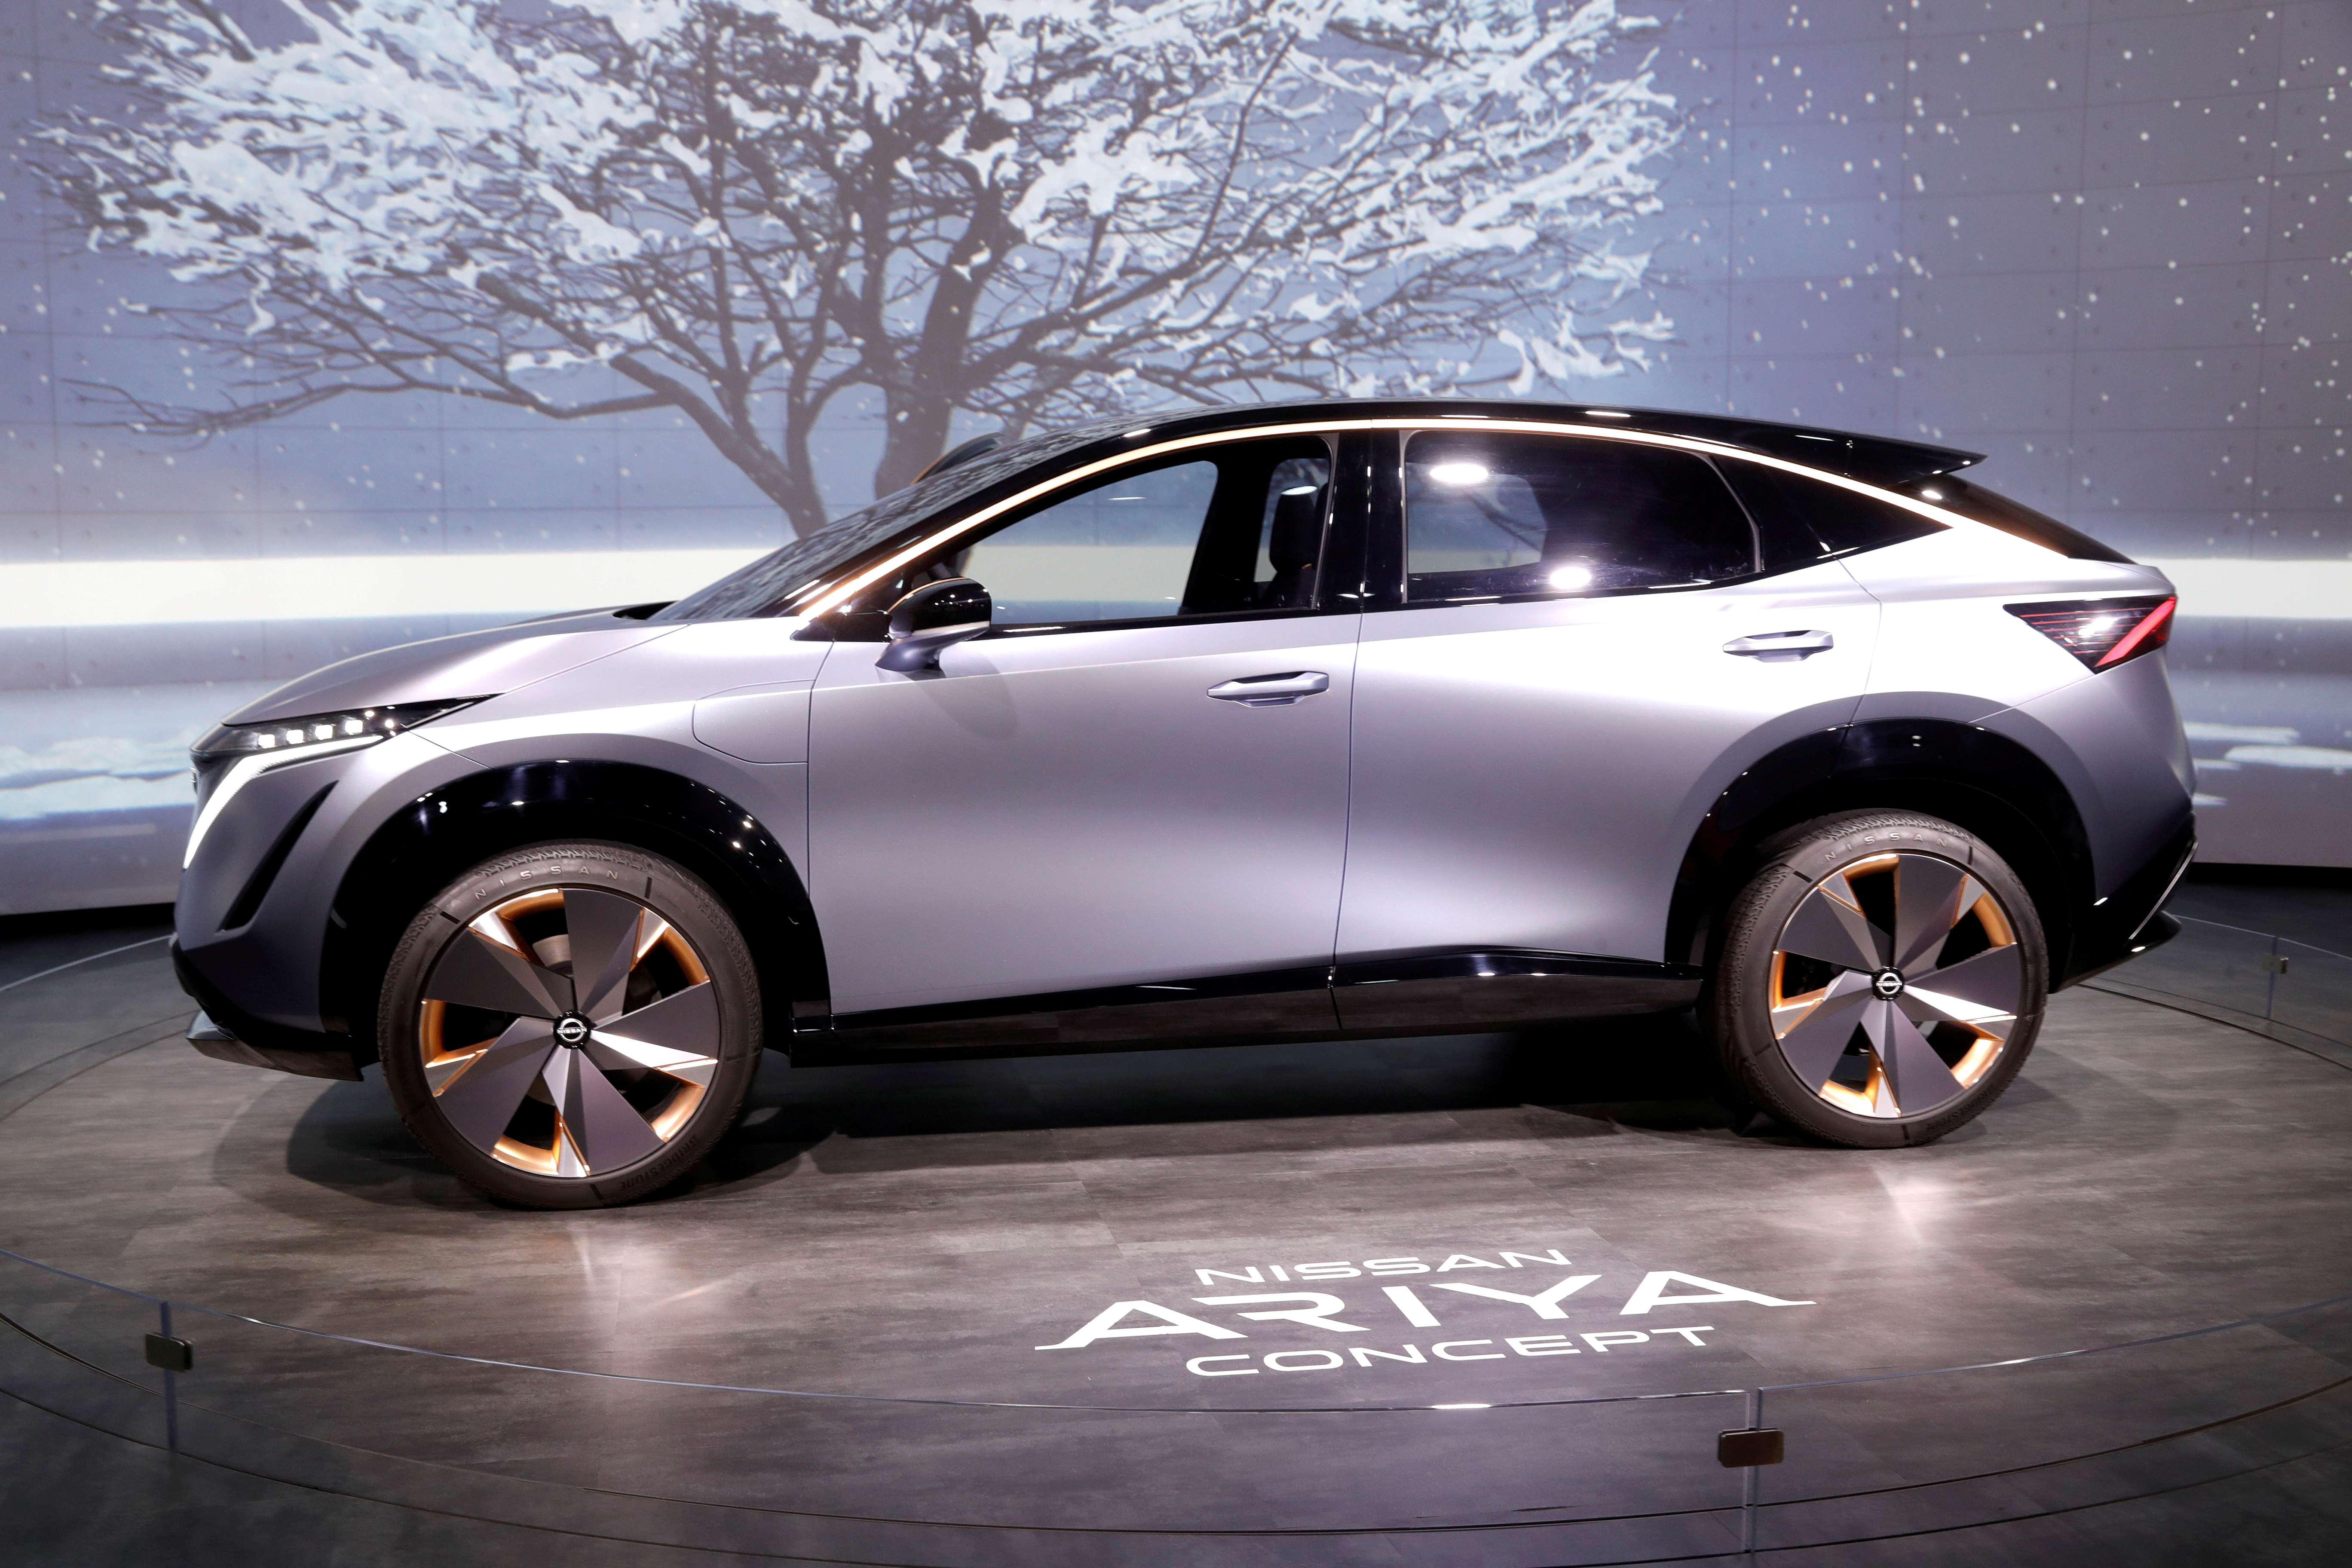 The Nissan Ariya concept car, an electric crossover SUV, is displayed during the 2020 CES in Las Vegas, Nevada, U.S. January 7, 2020. REUTERS/Steve Marcus/File Photo